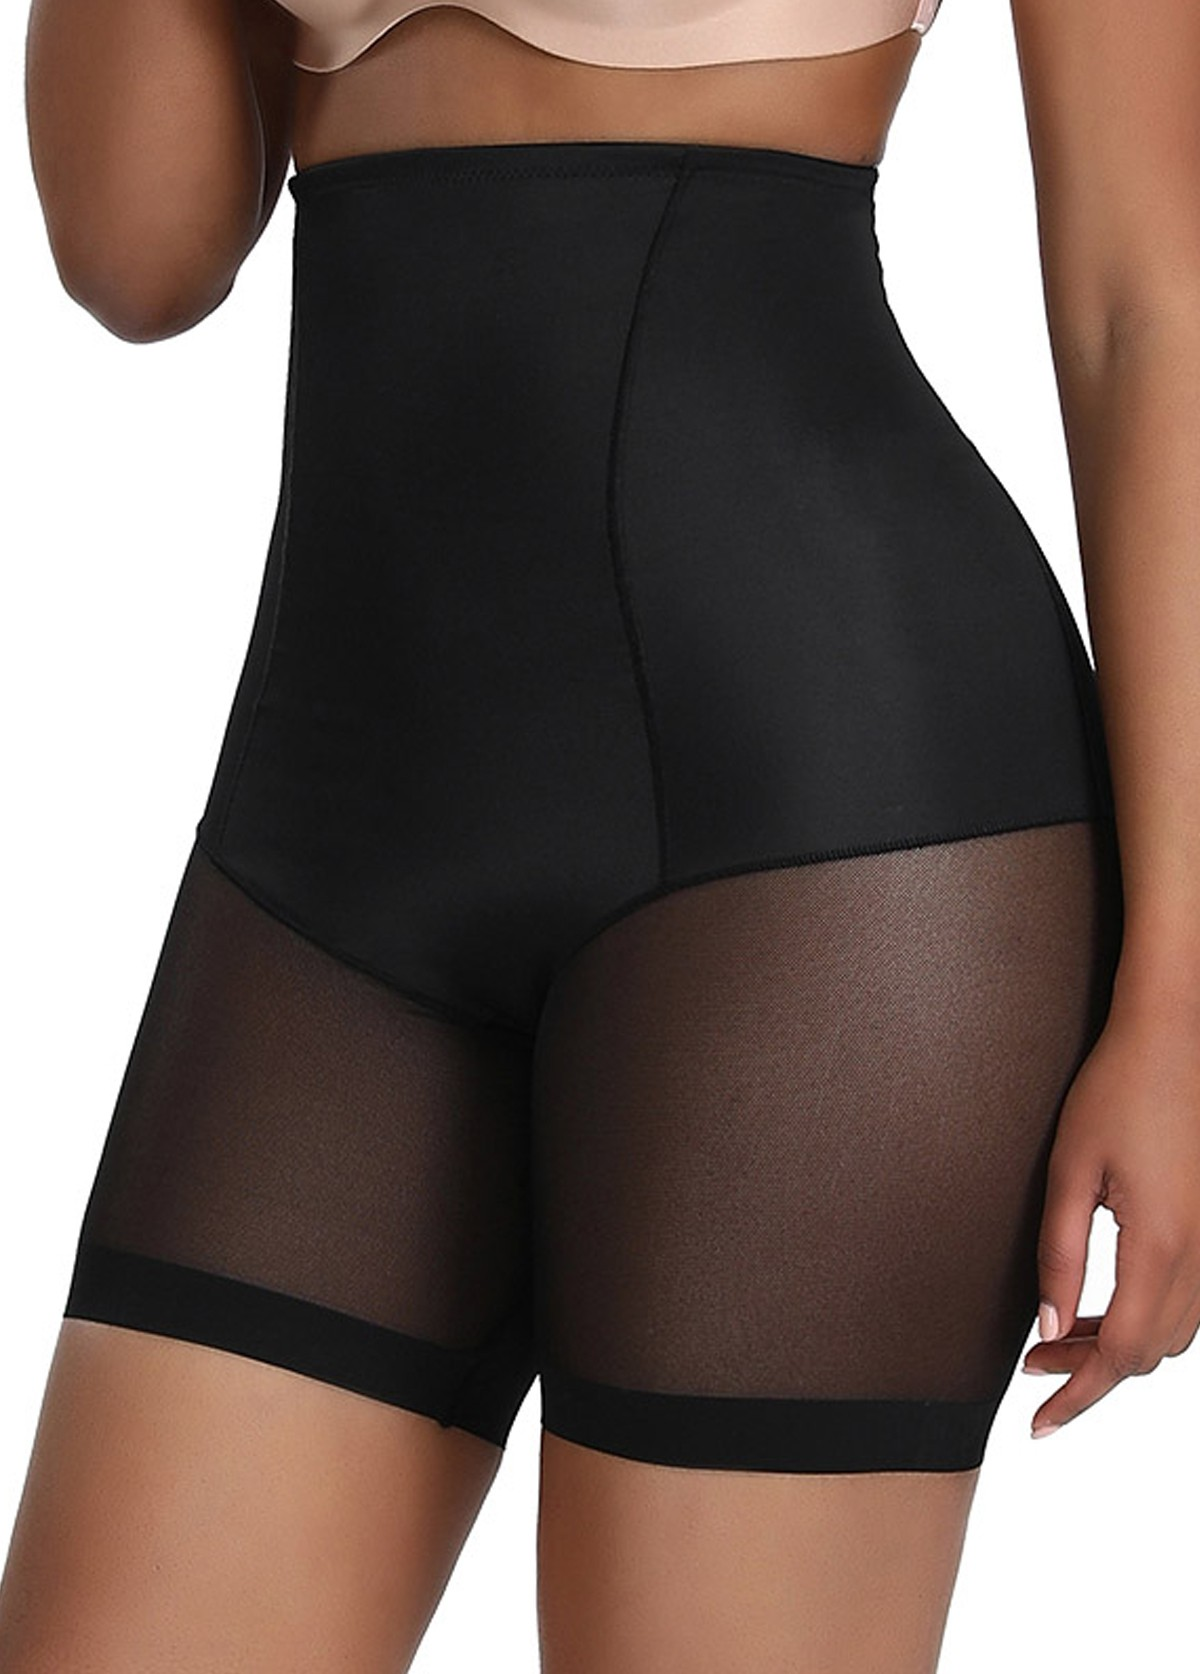 Black High Waisted Solid Panties